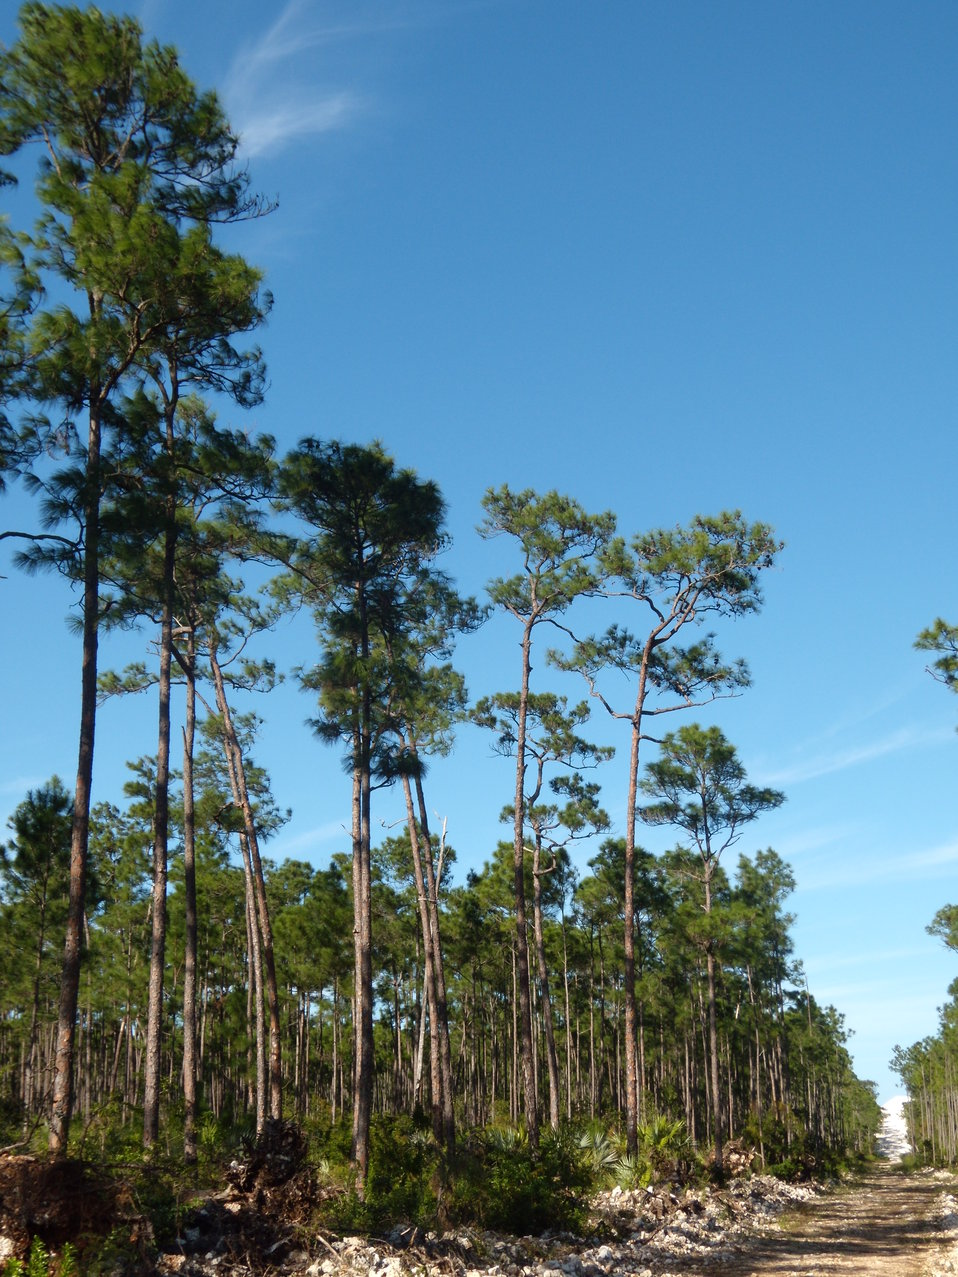 Caribbean pine forest